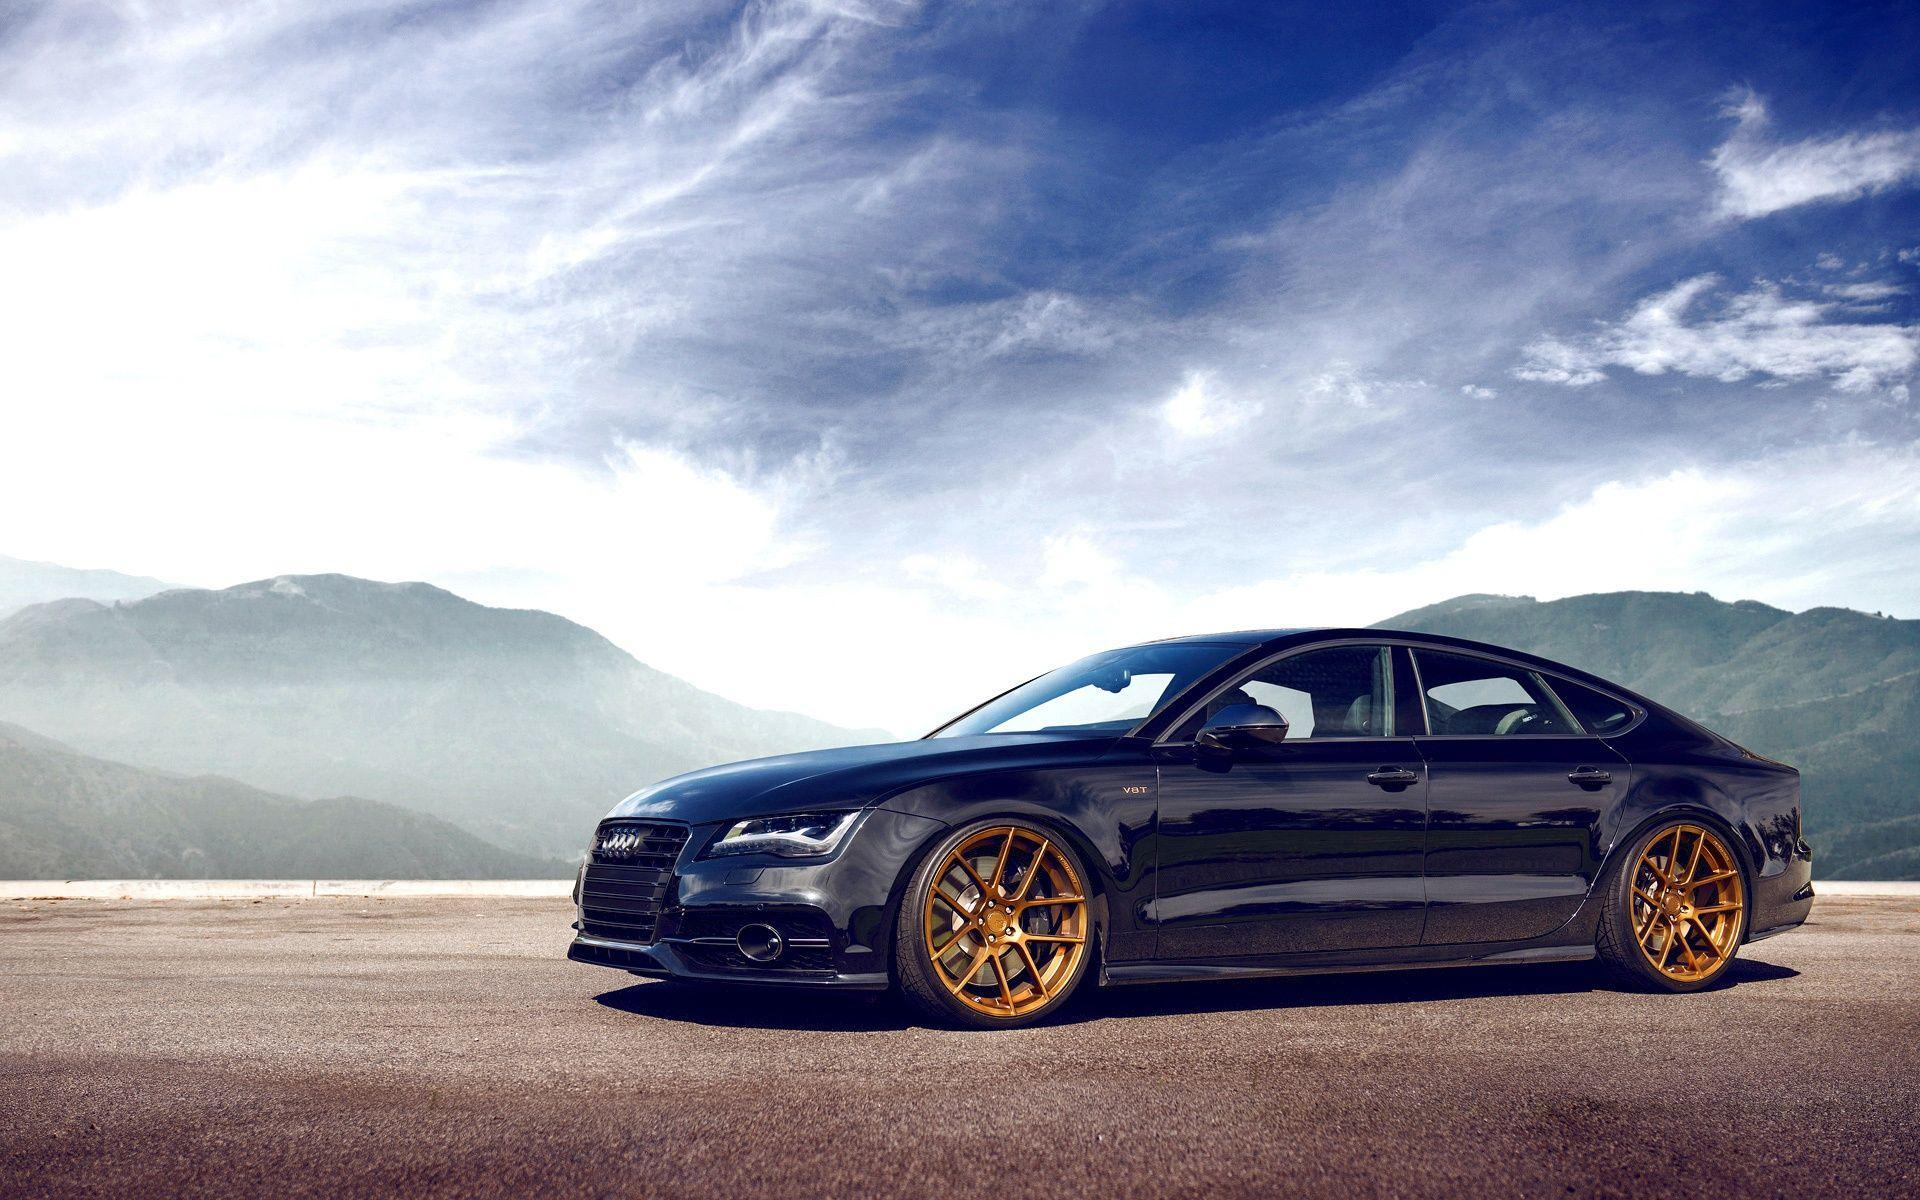 Audi A7 Front Black HD Wallpapers